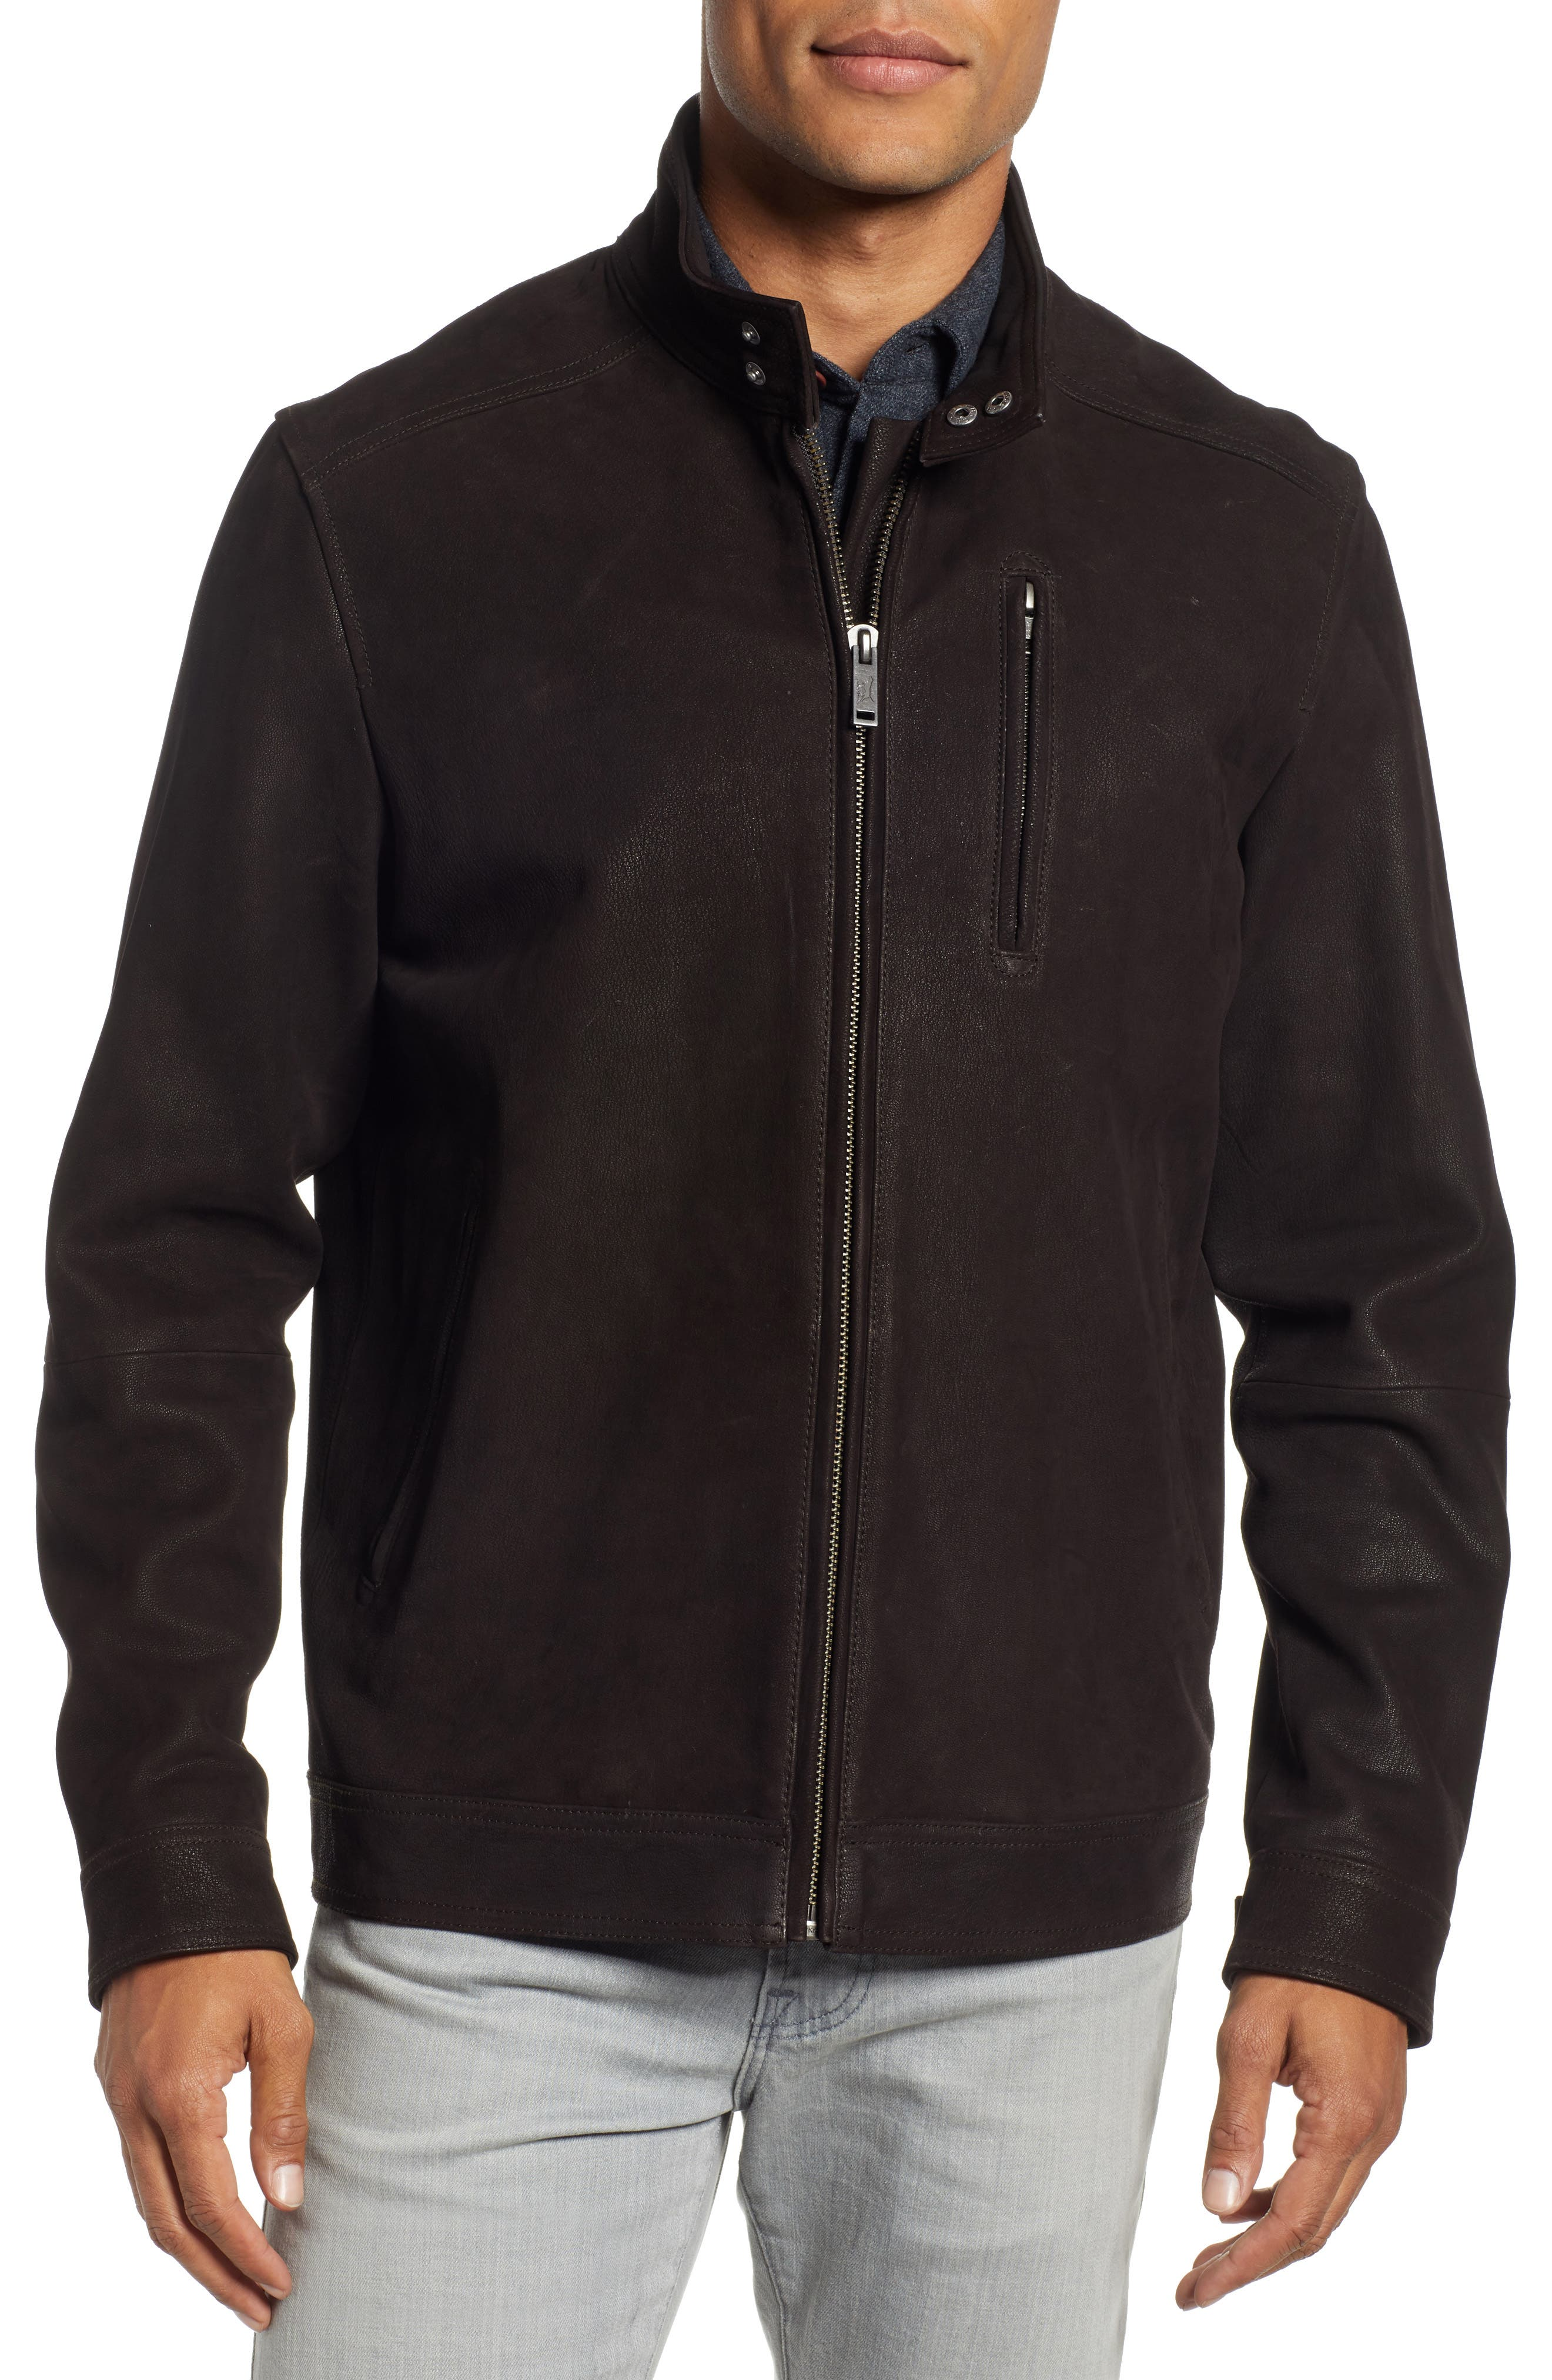 Westhaven Distressed Leather Bomber Jacket,                             Alternate thumbnail 4, color,                             CHOCOLATE